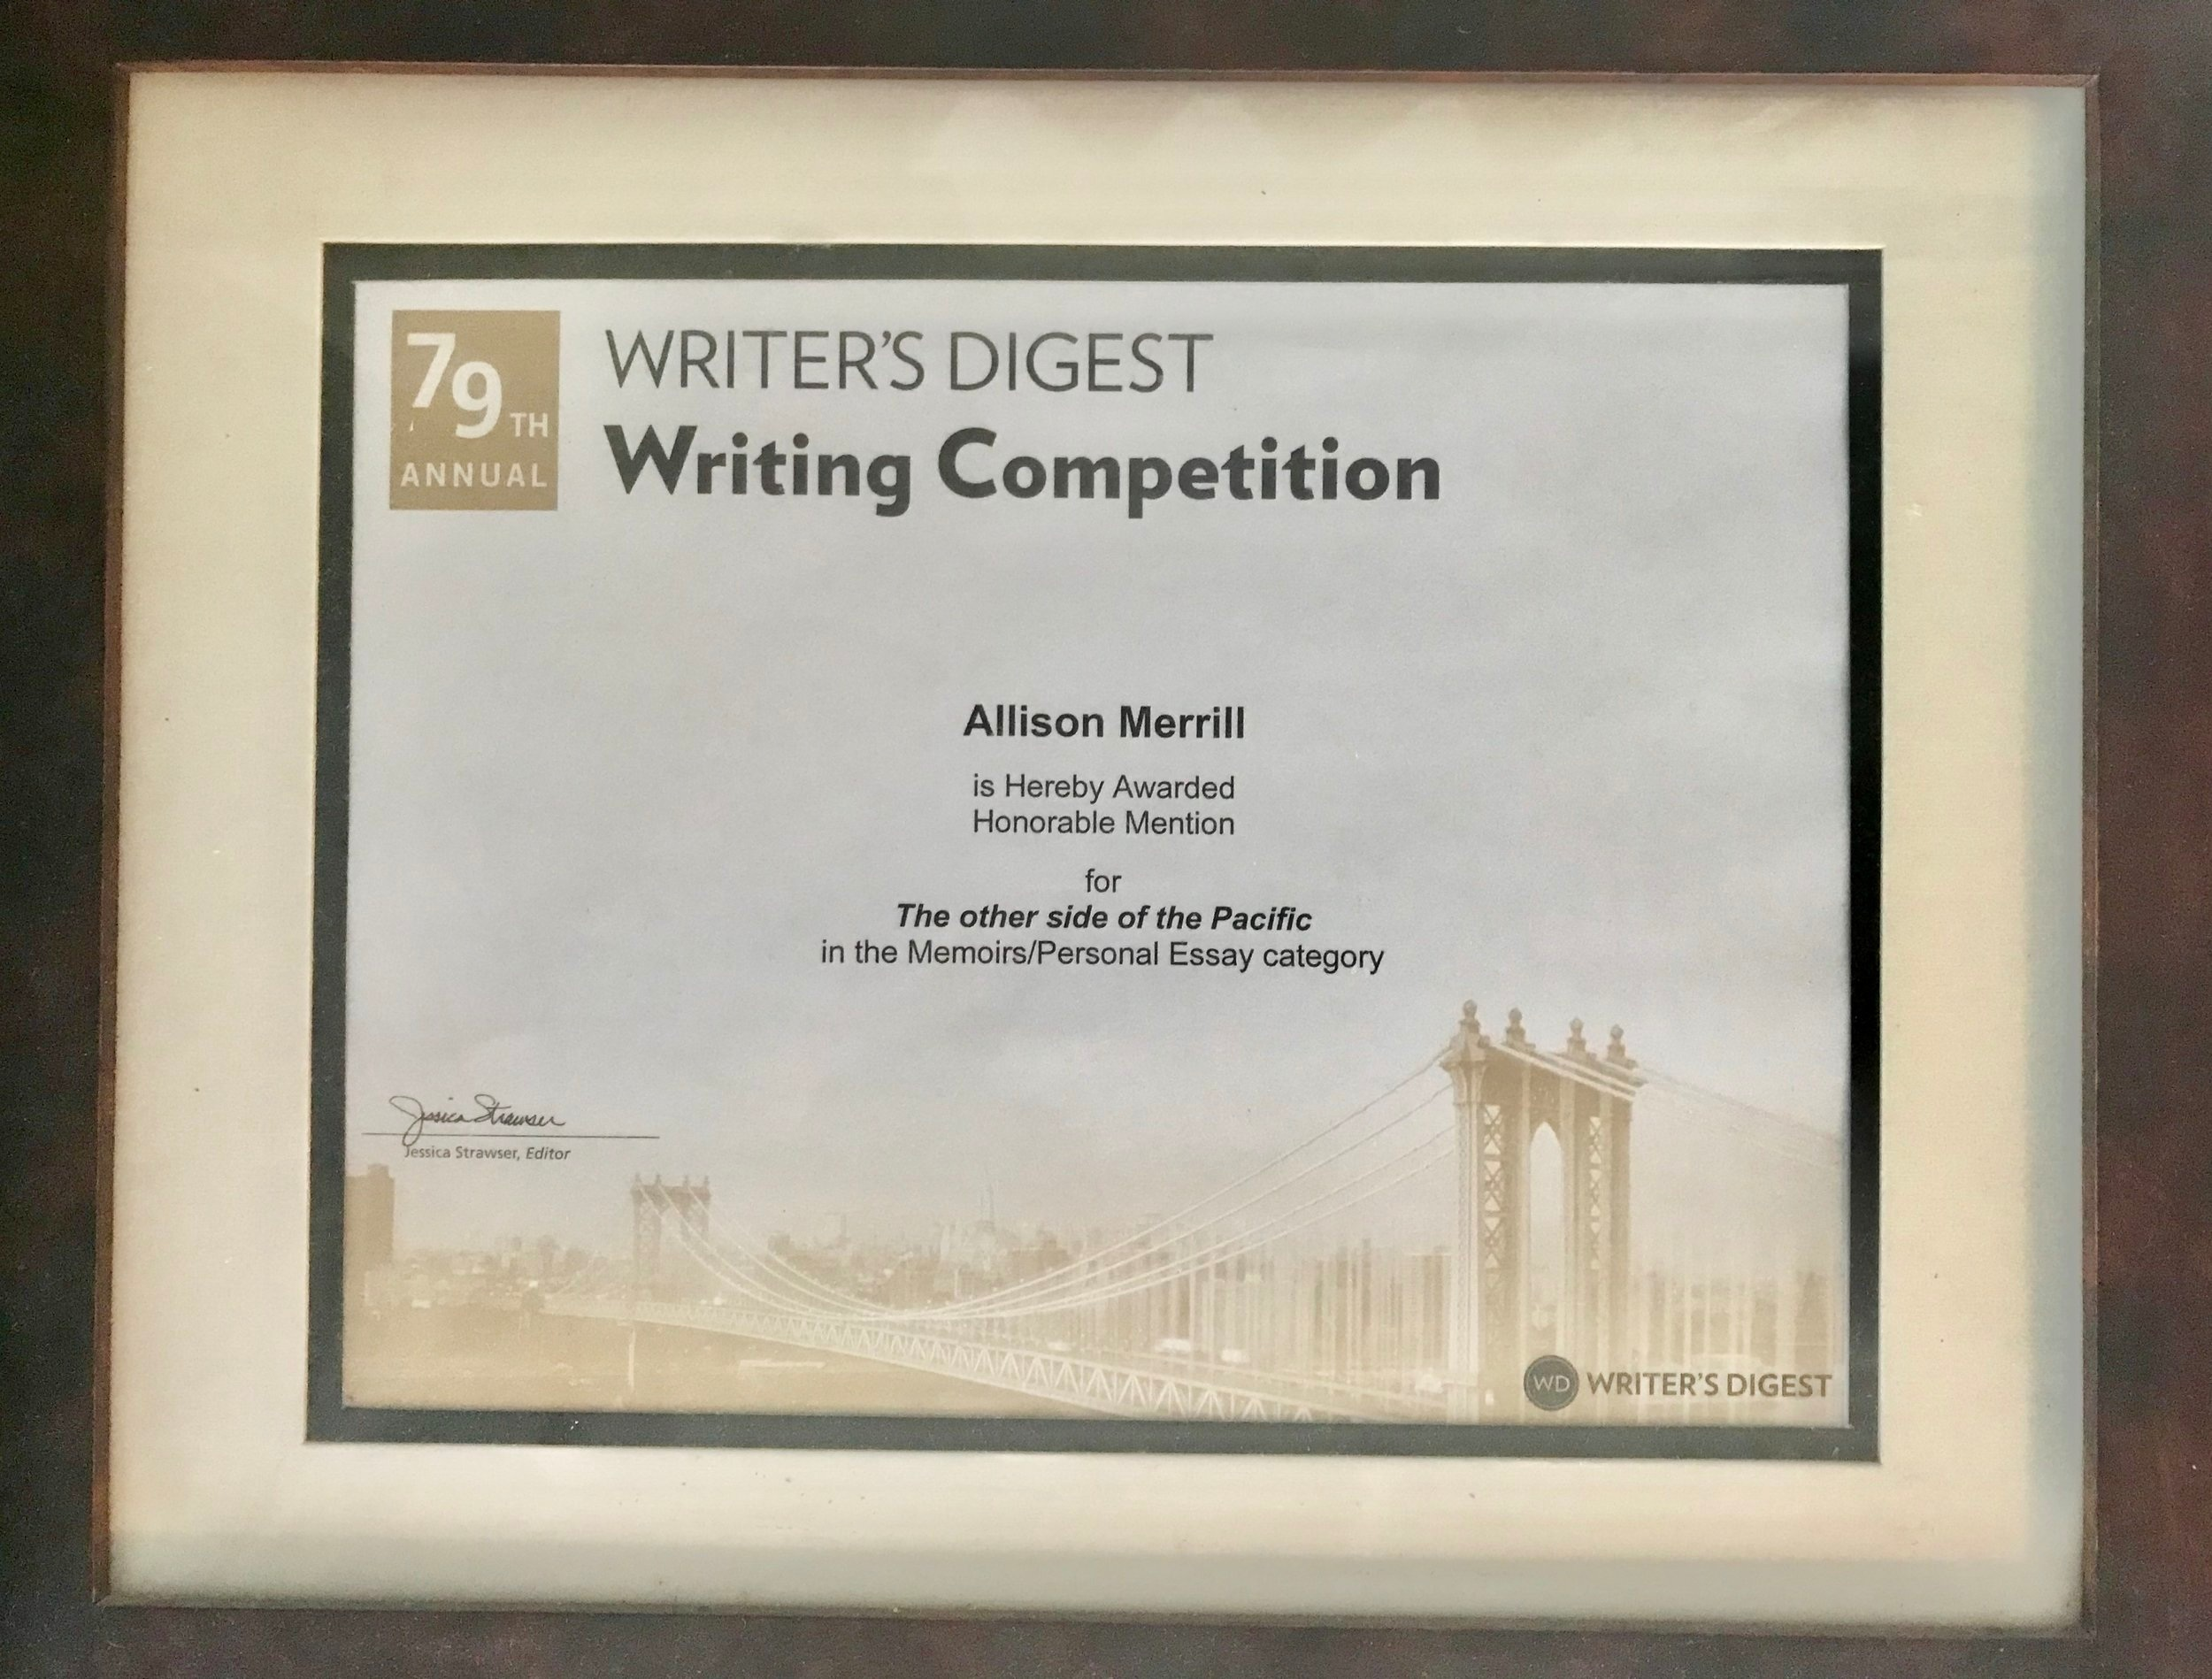 Allison's essay won Honorable Mention in the 79th Annual Writer's Digest Writing Contest.